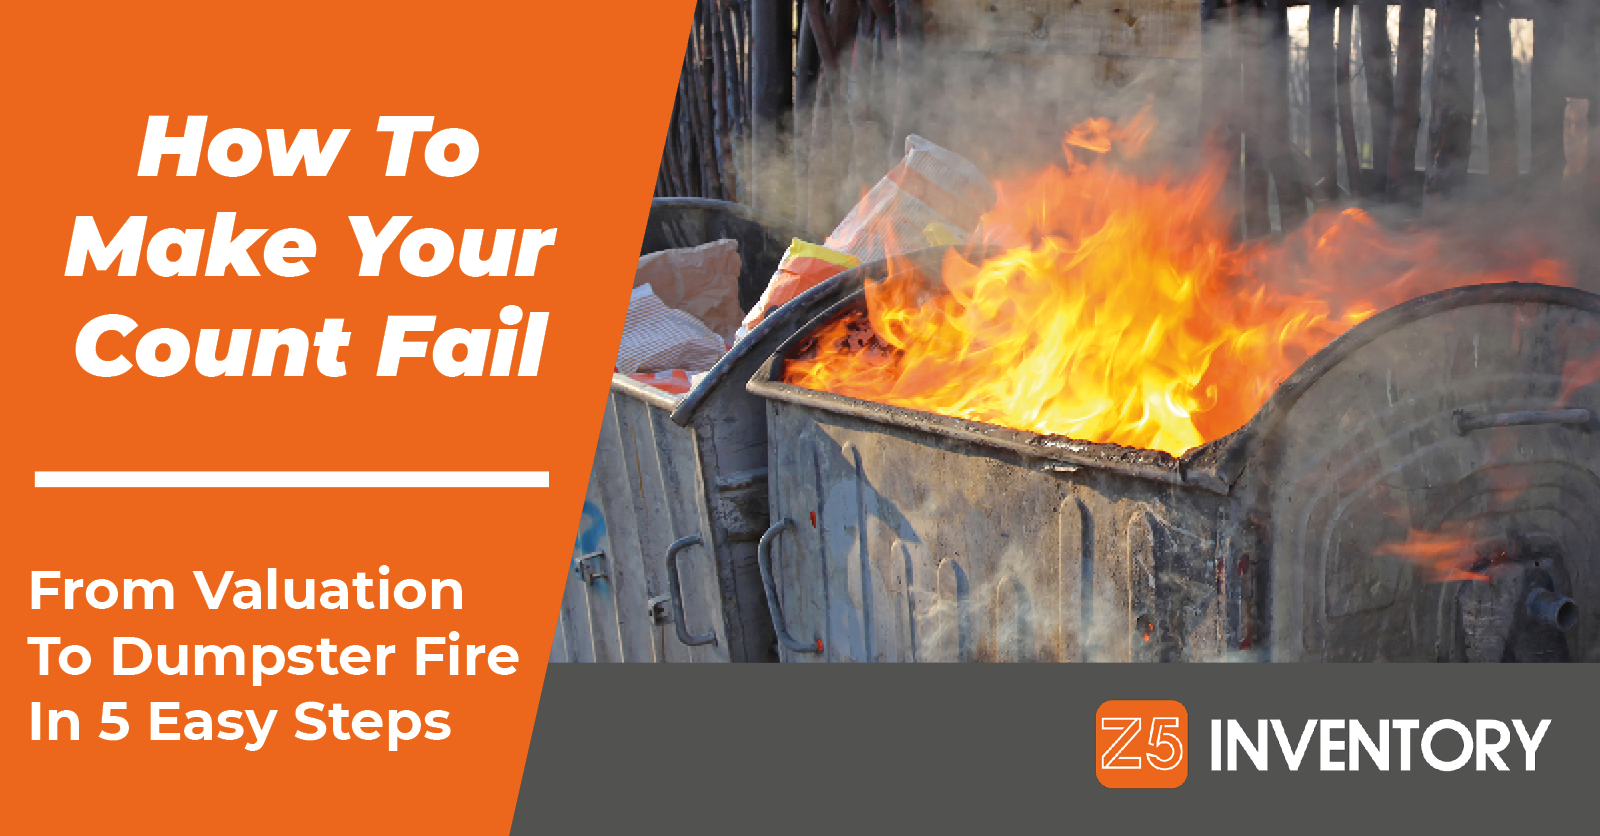 Your Inventory Valuation Is Turning Into A Dumpster Fire.